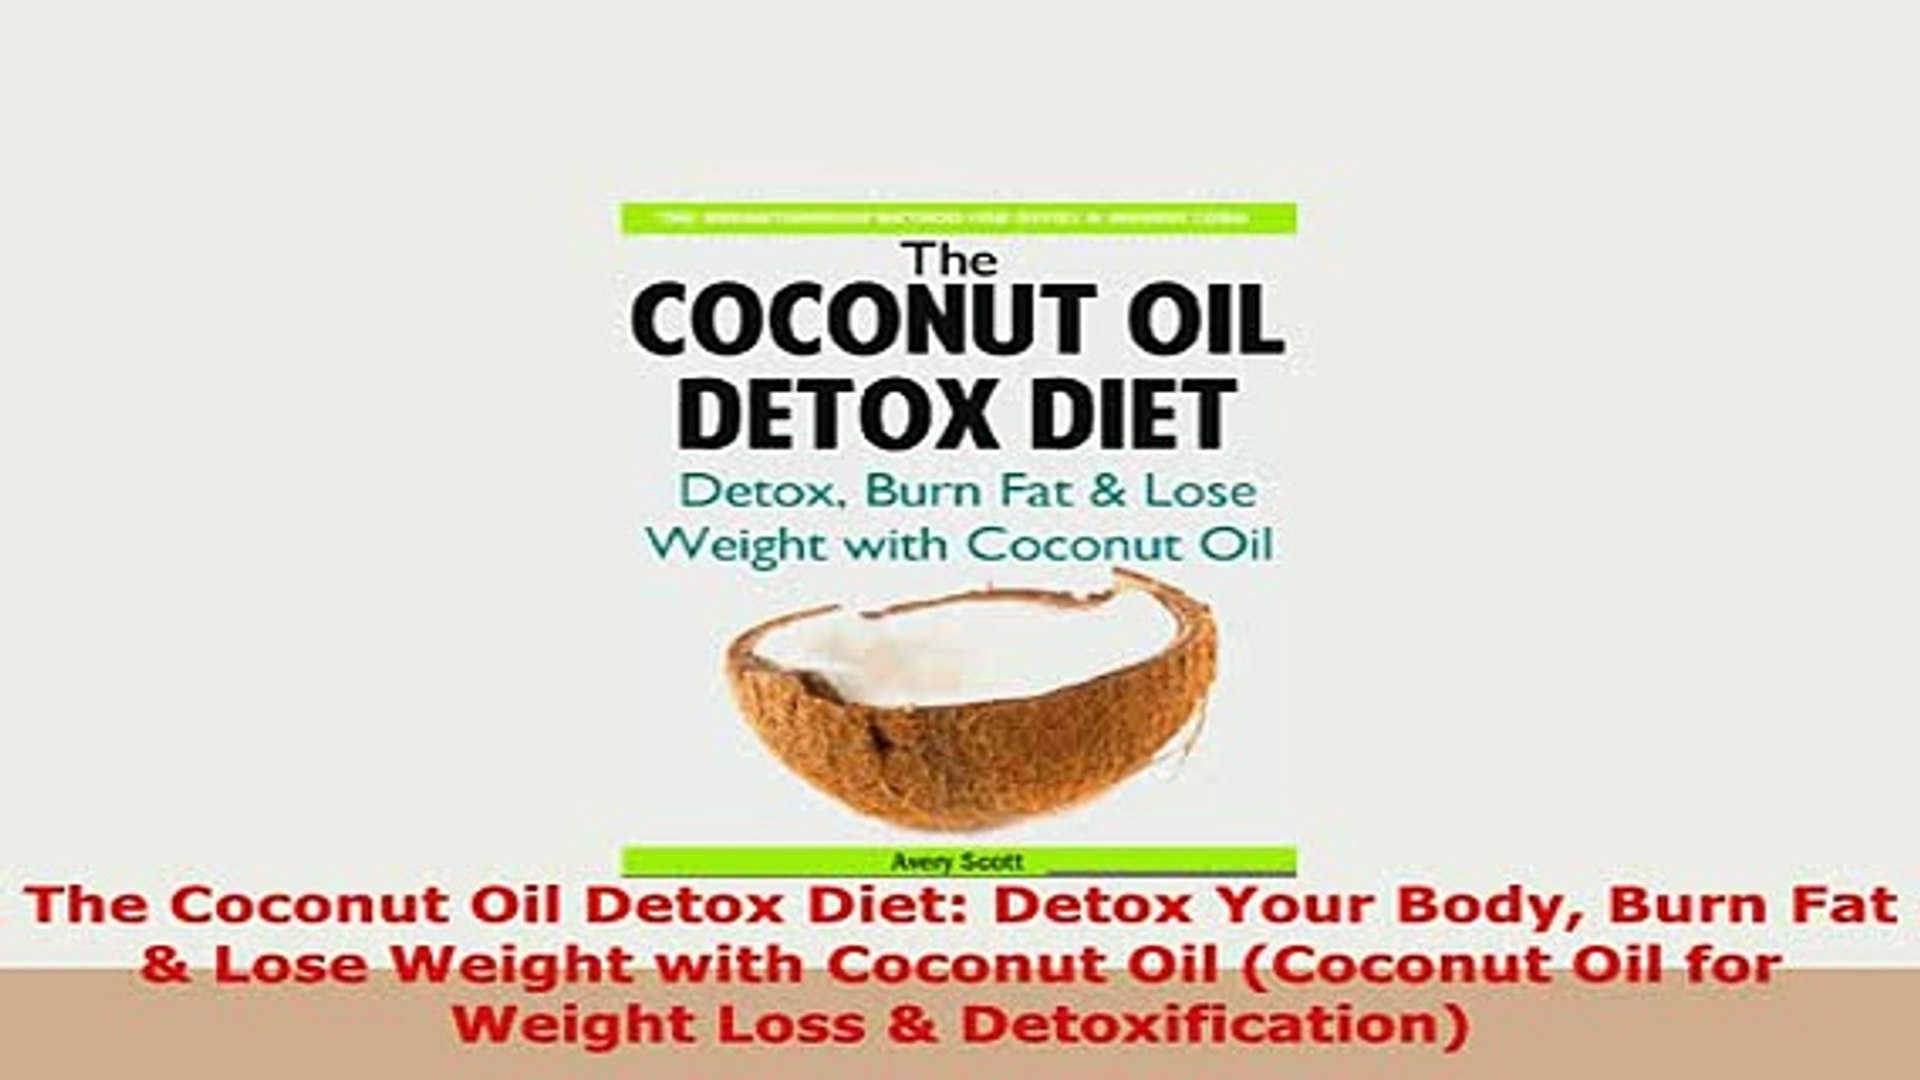 Download The Coconut Oil Detox Diet Detox Your Body Burn Fat Lose Weight  with Coconut Oil Read Full Ebook